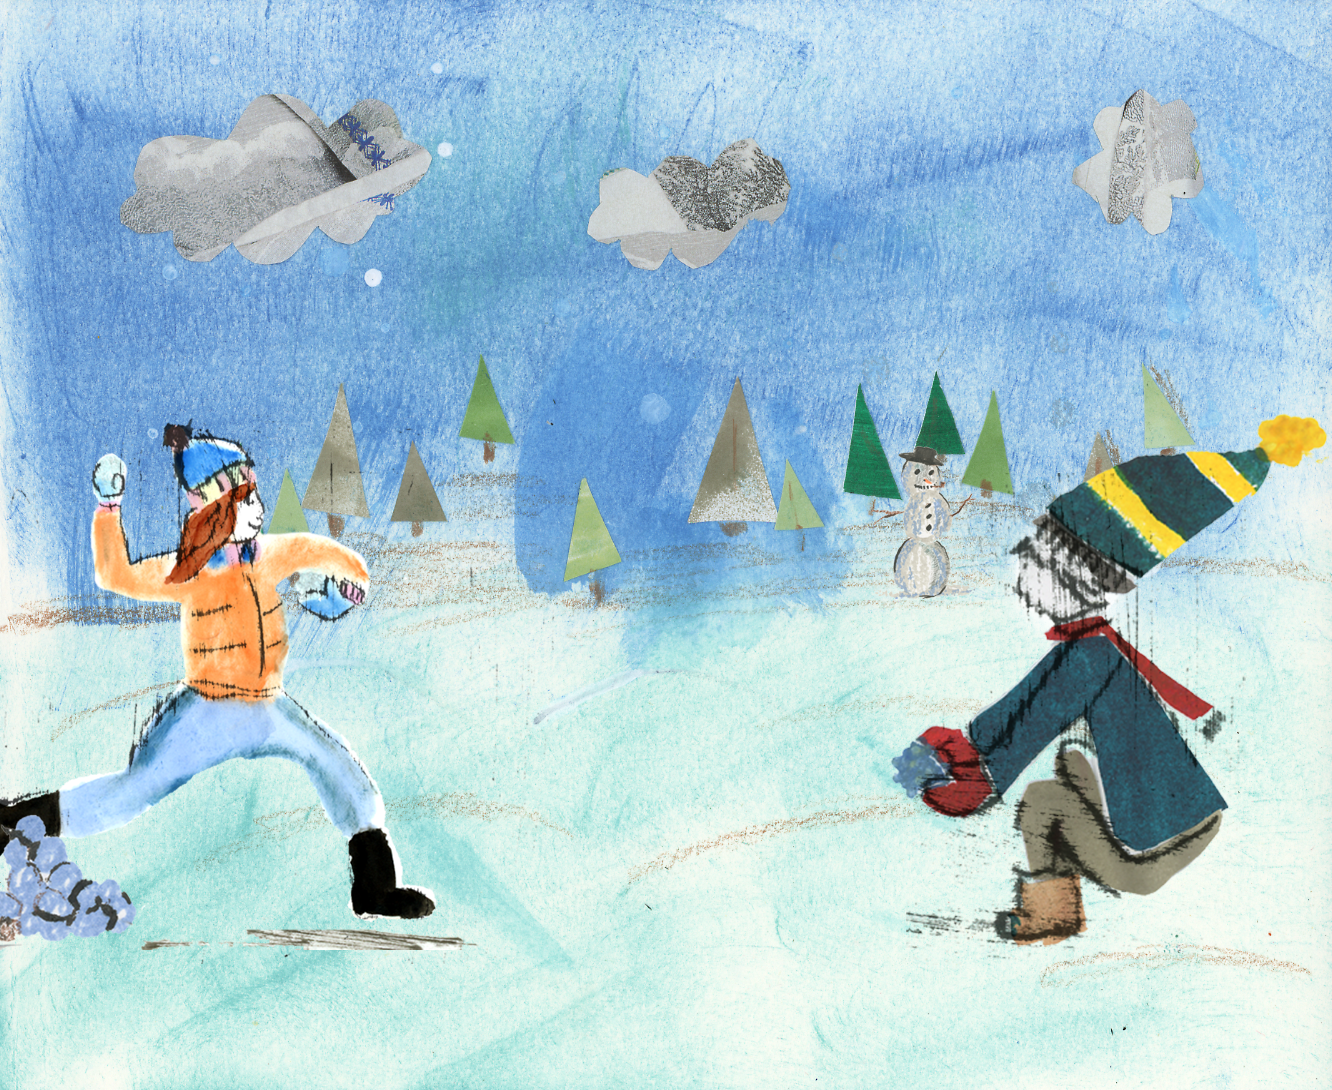 snowball fight illustration